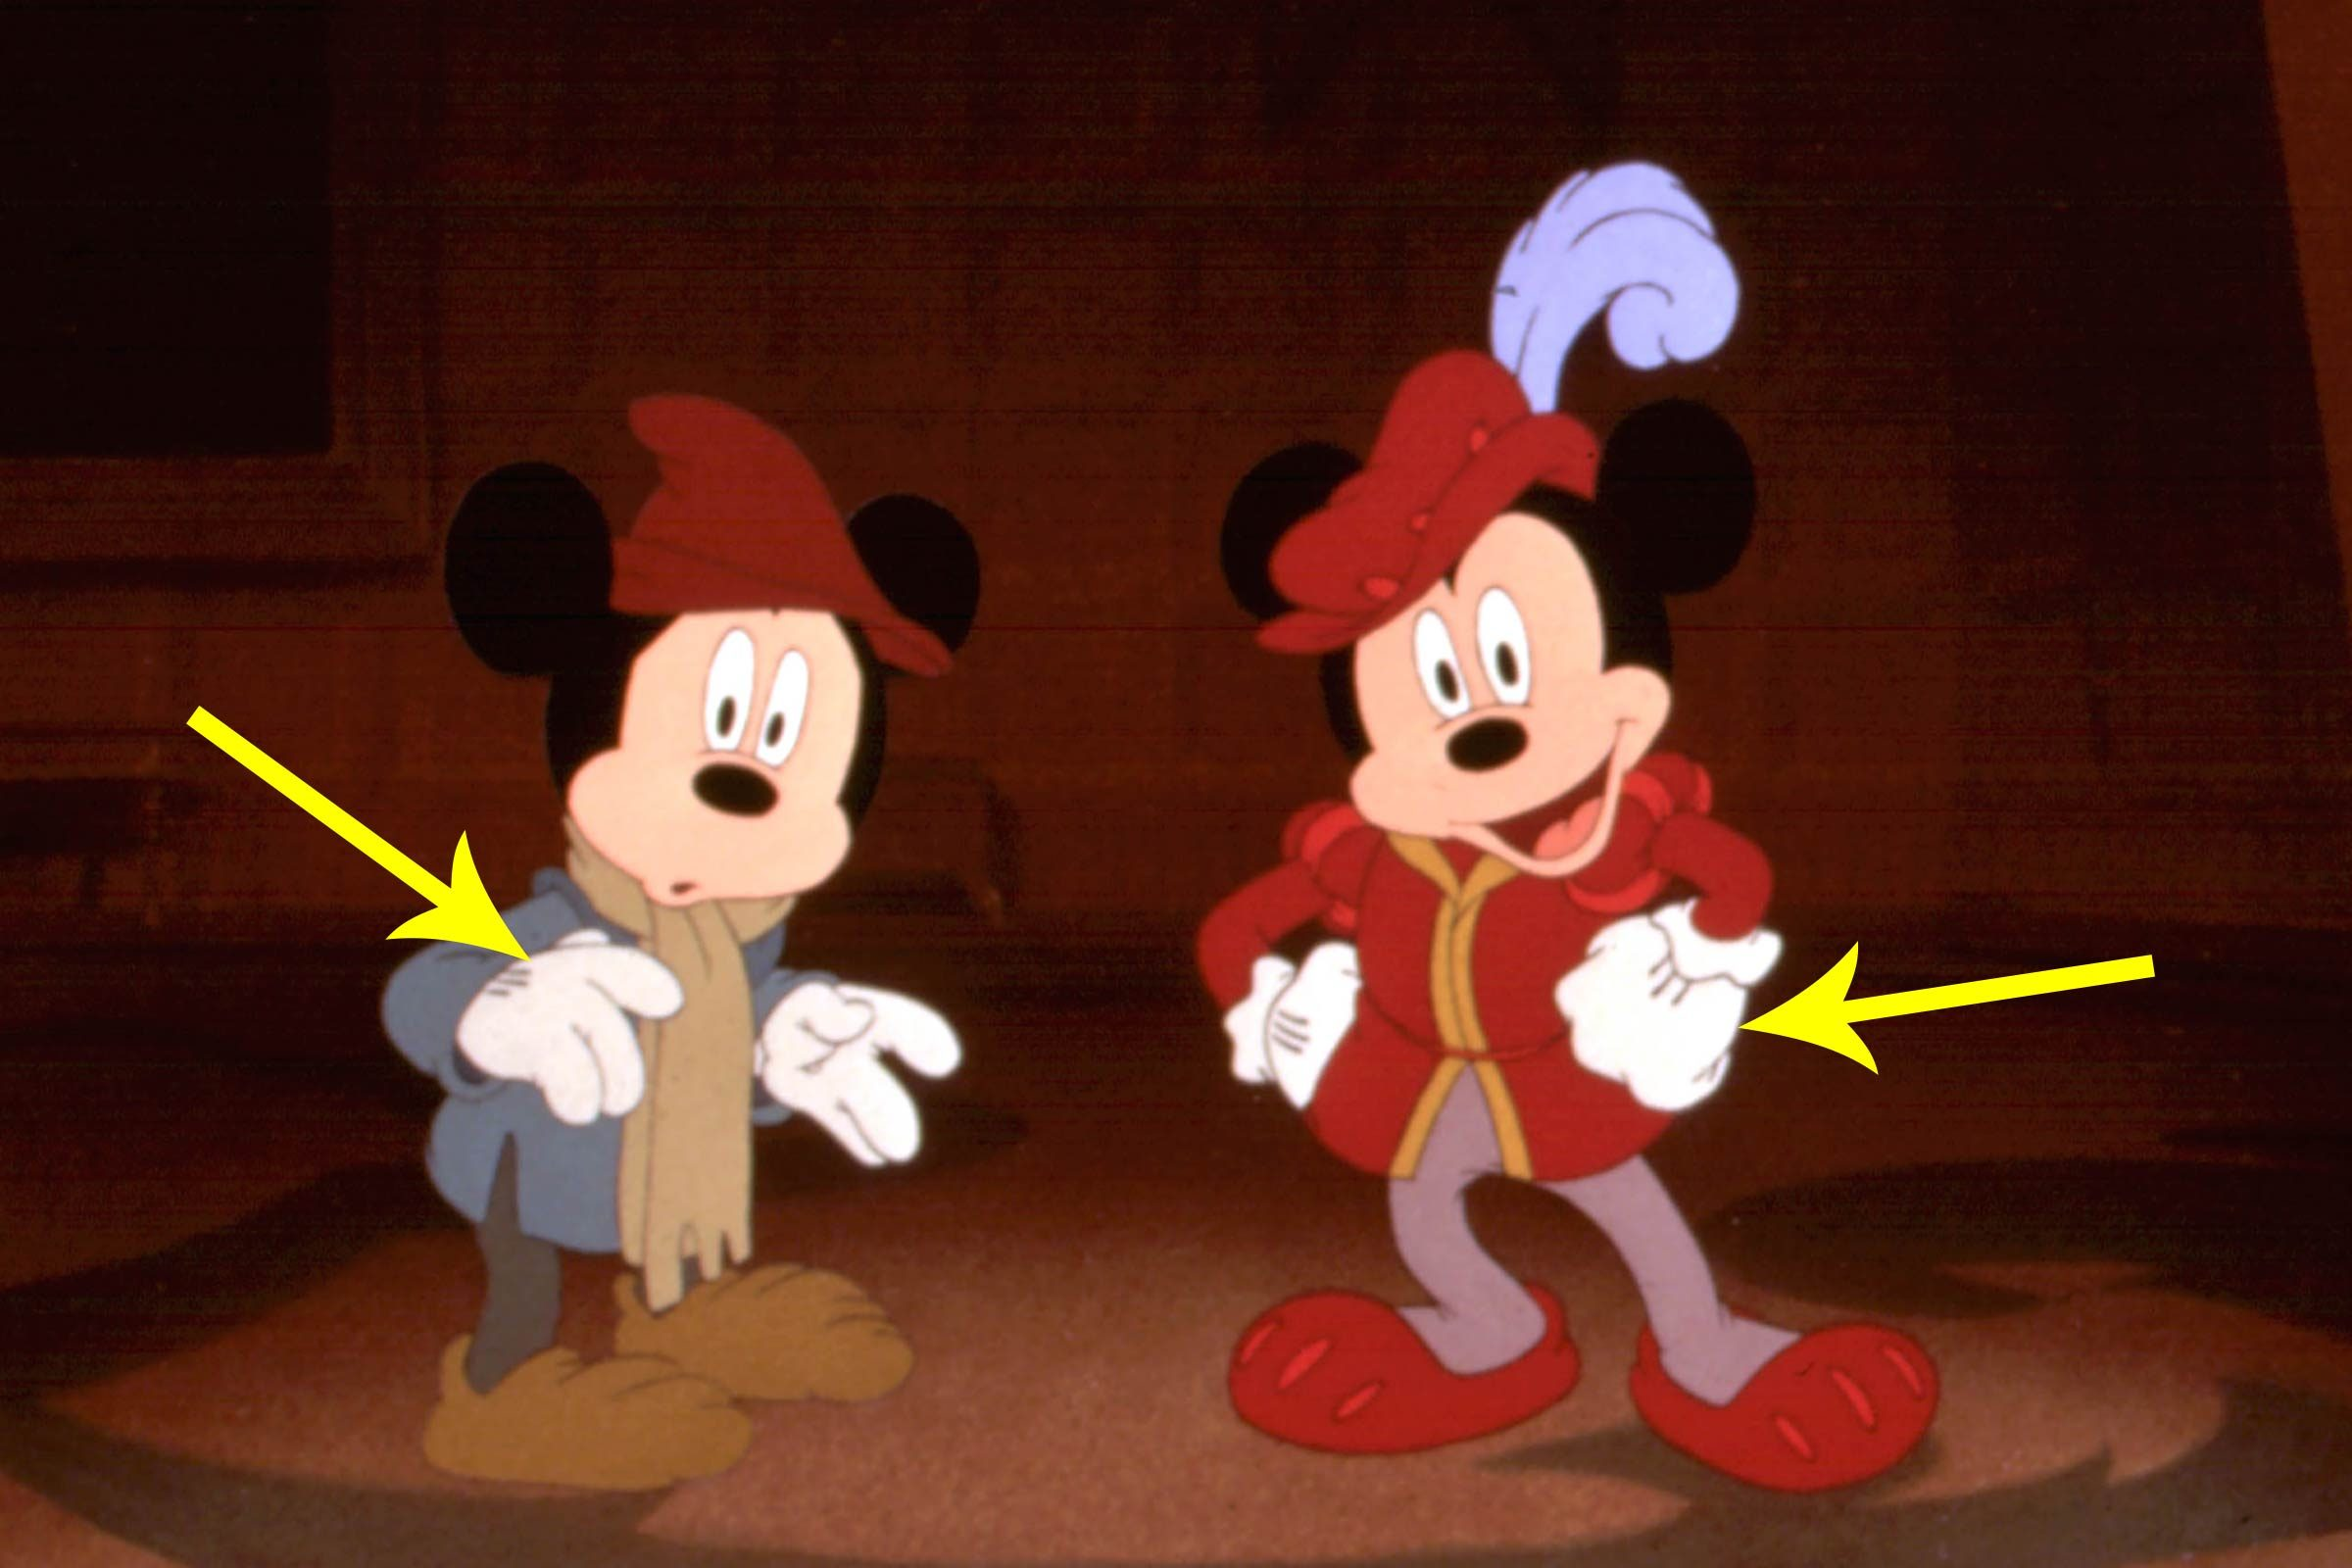 Mickey Mouse Film and Television